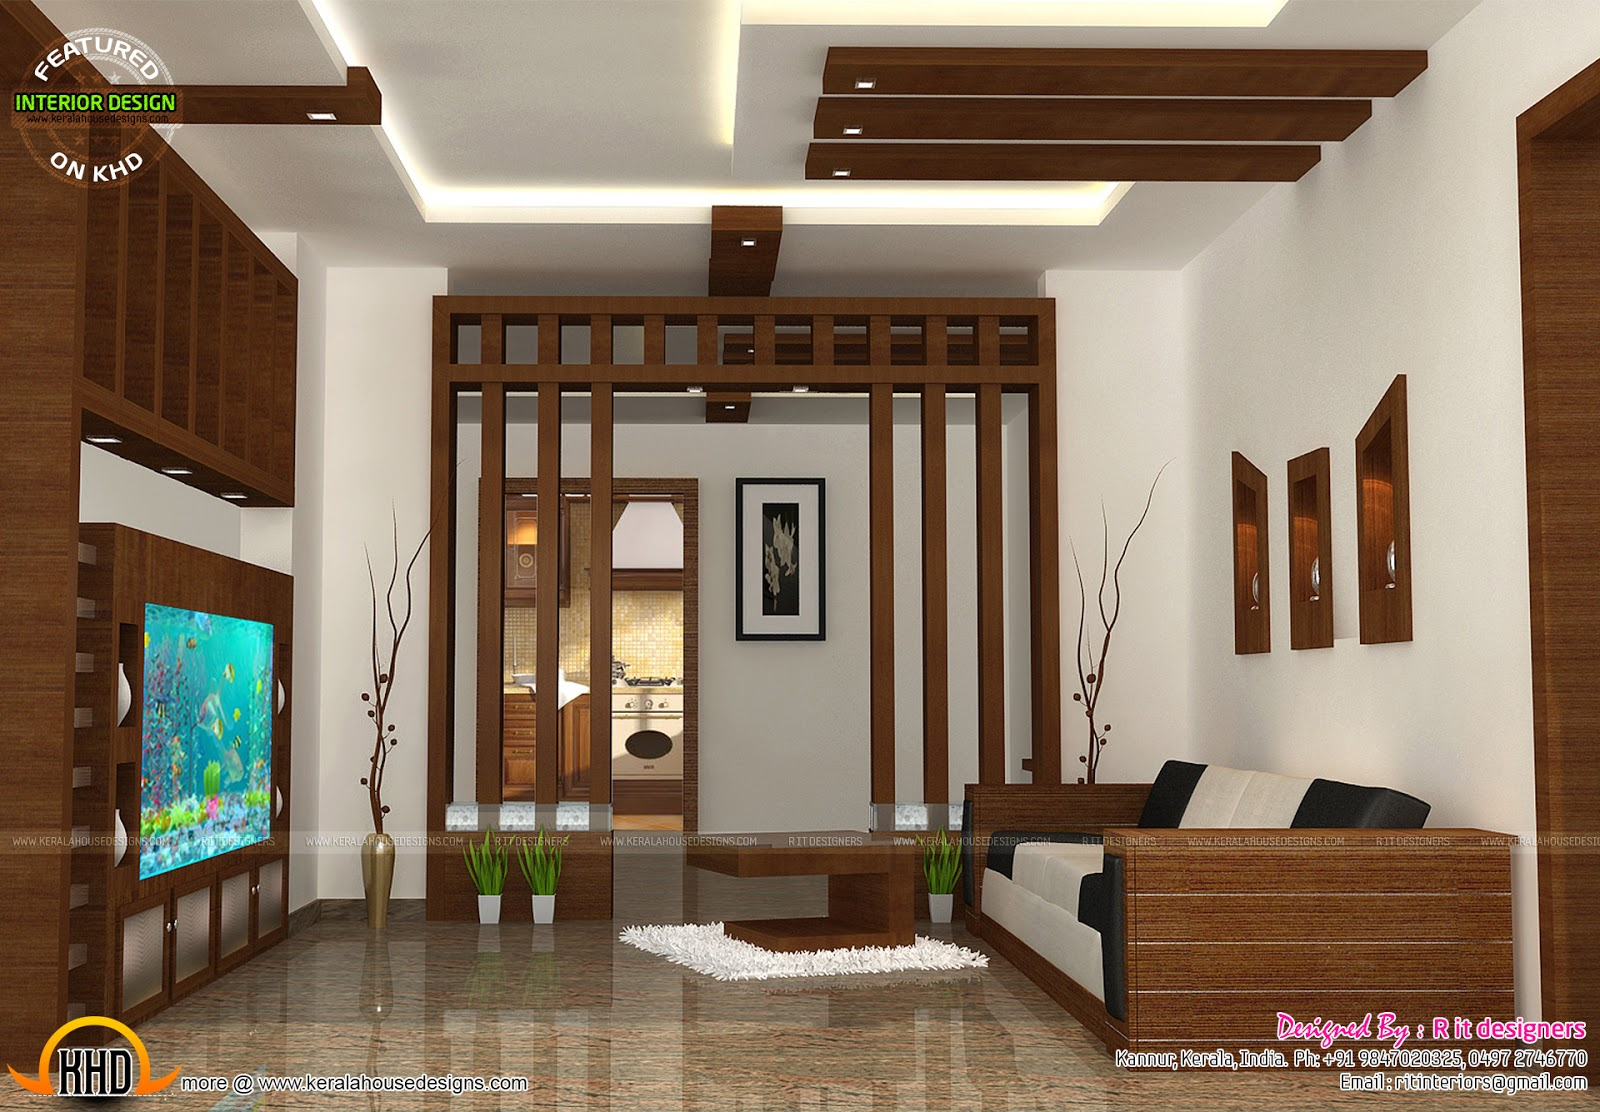 Wooden finish interiors kerala home design and floor plans for Interior design plans for houses